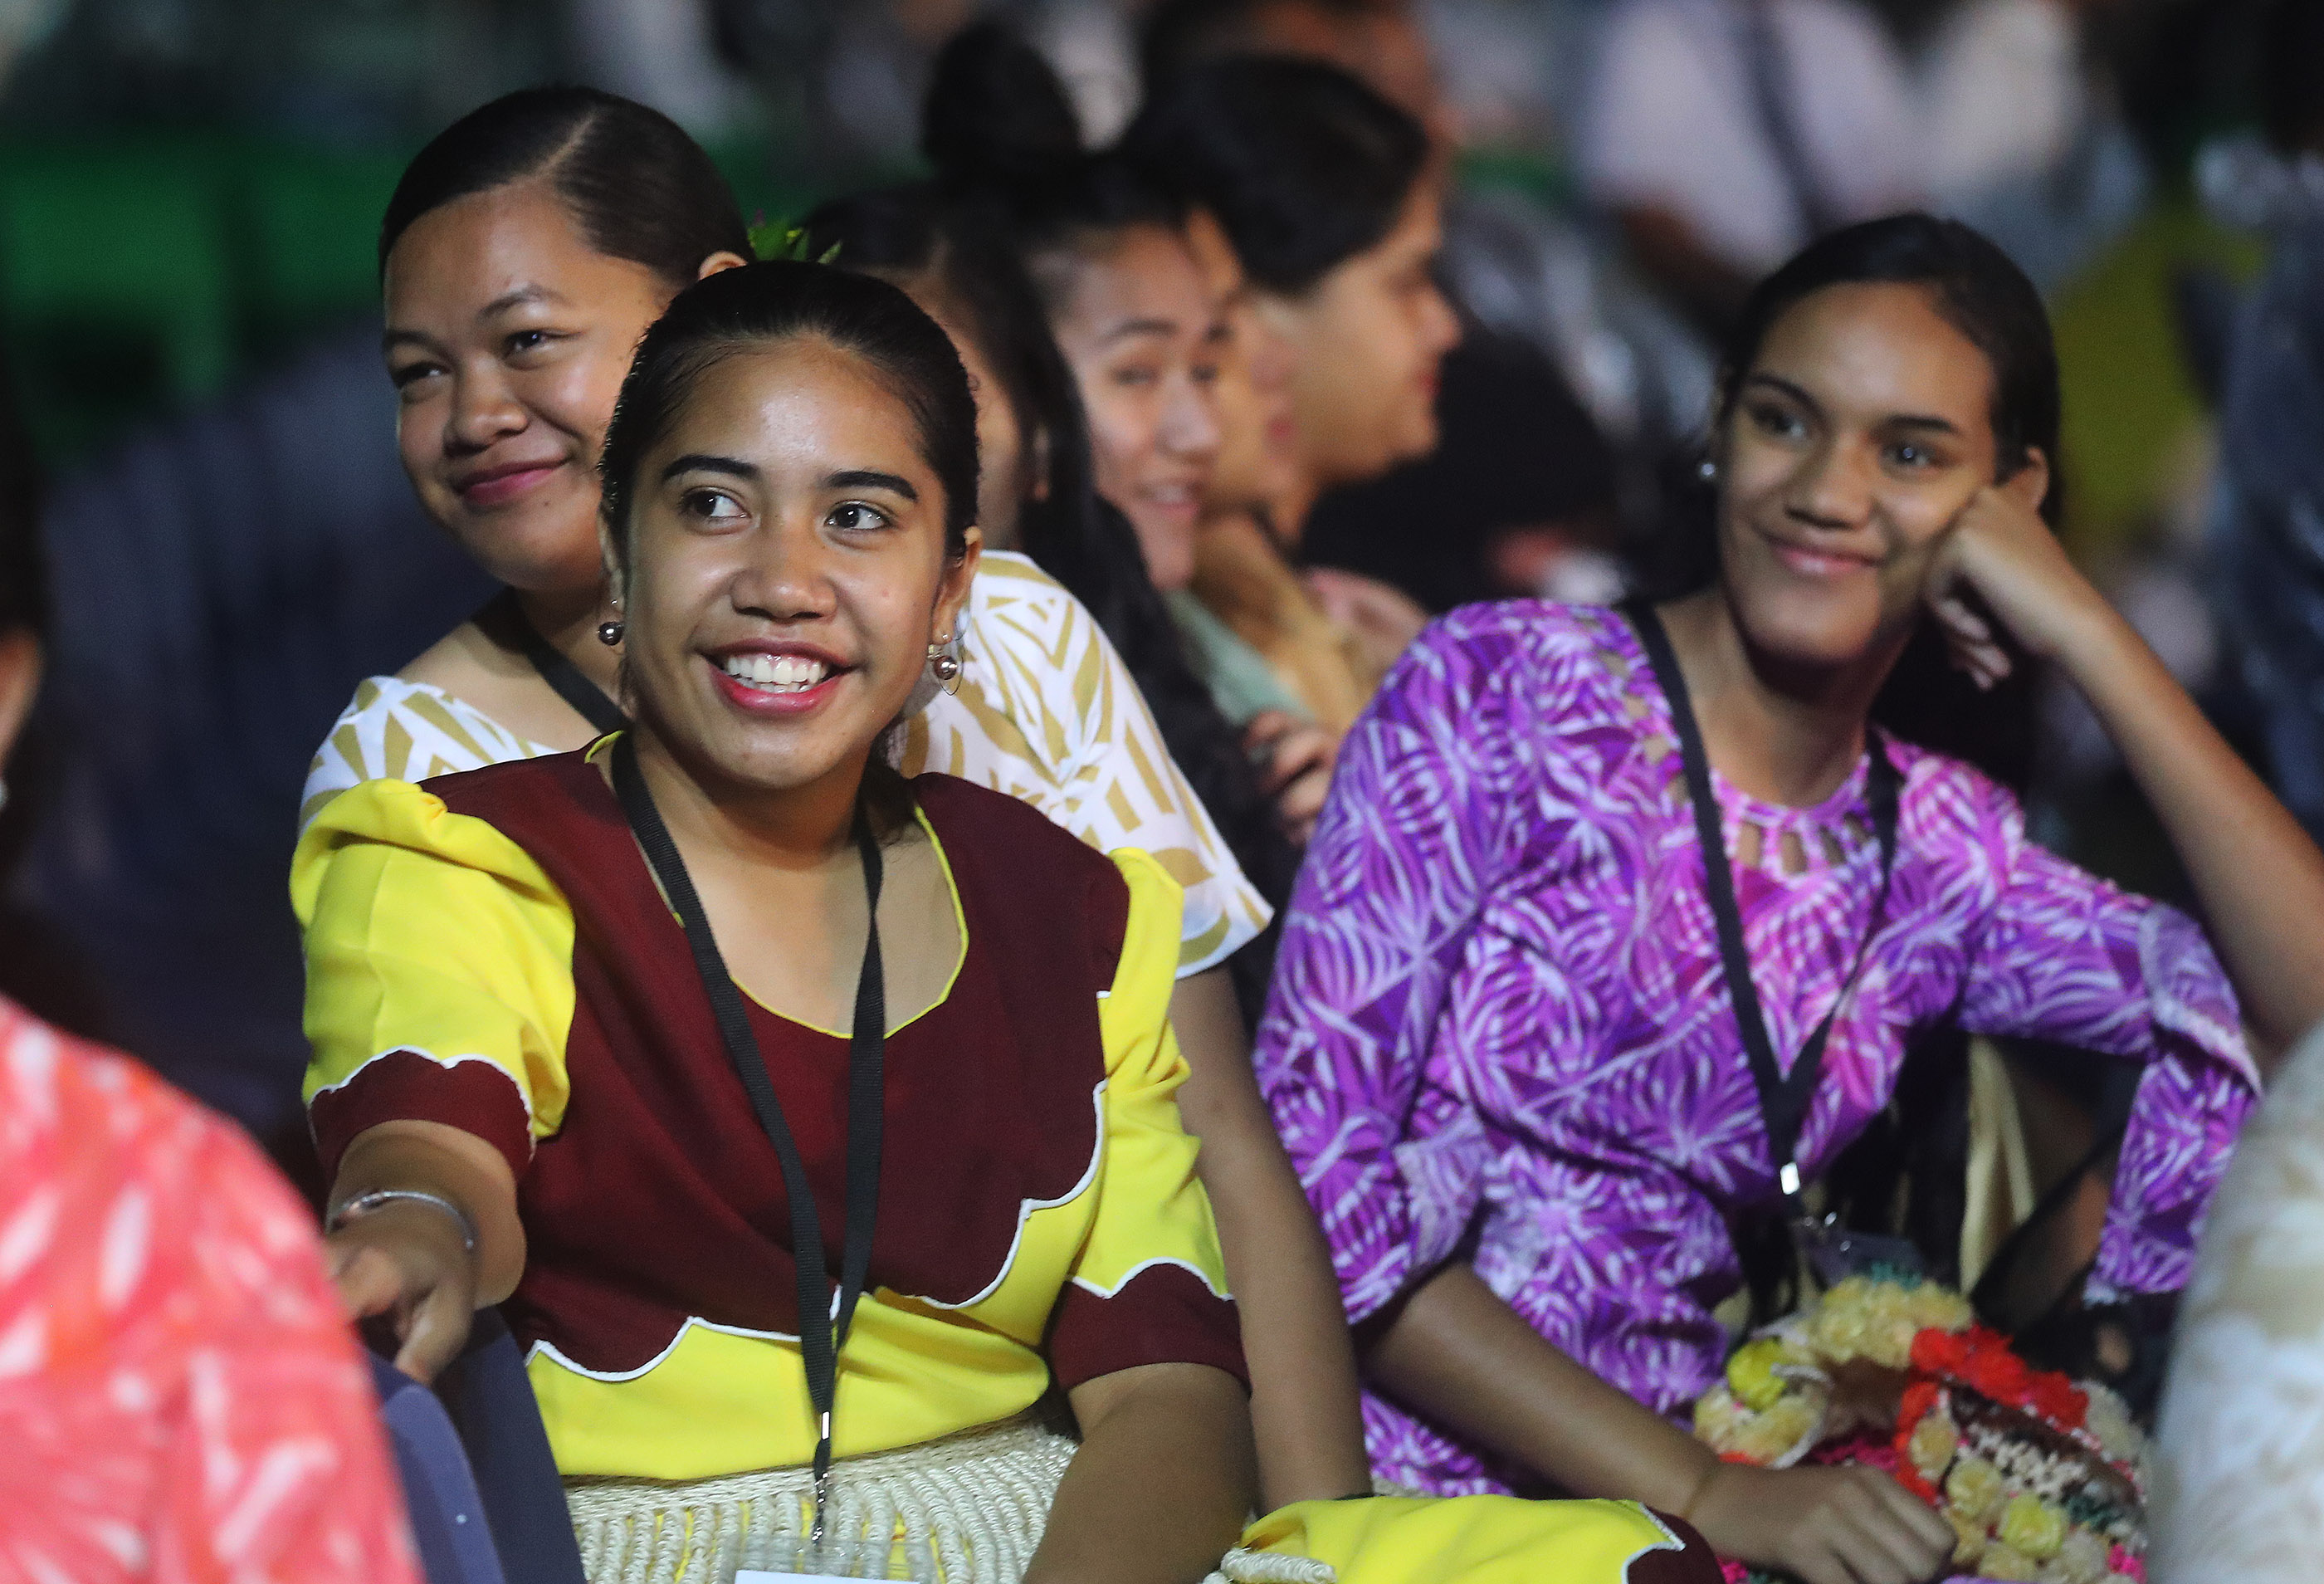 Lisia Tuakoi, Kalonisita Tonga and Aulola Langi listen during a devotional in Nuku'alofa, Tonga, on May 23, 2019.